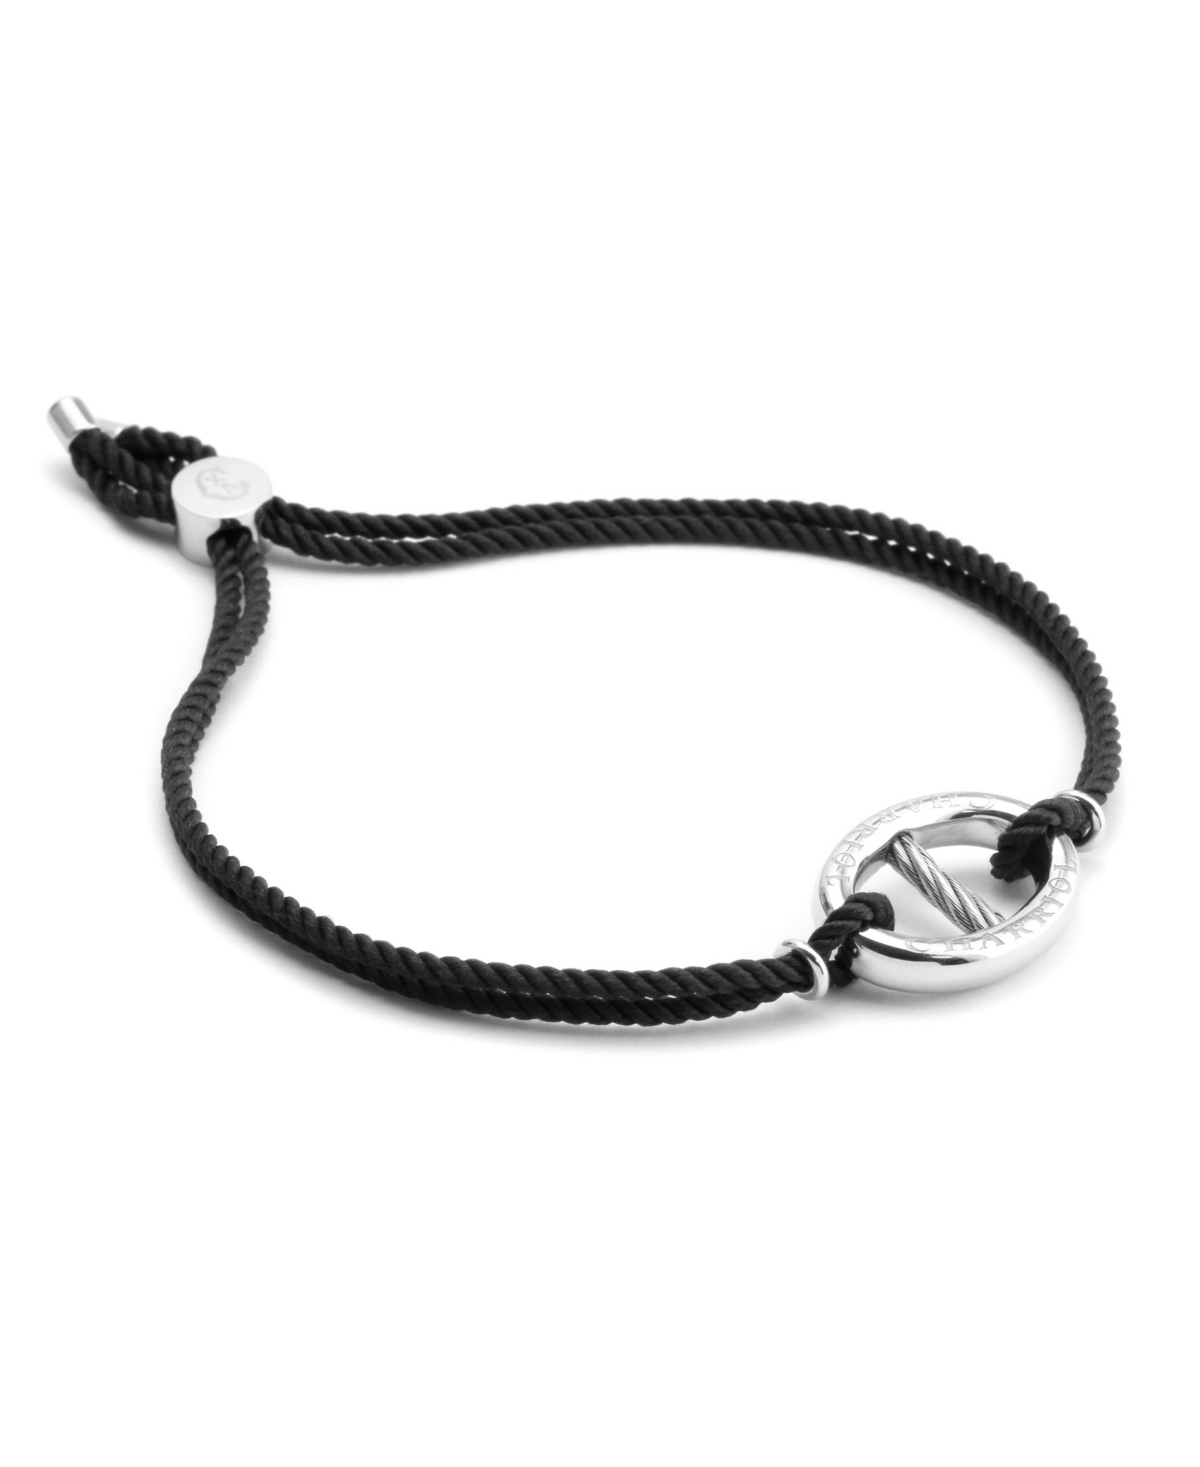 Marina, Silver bracelet with black string, Stainless steel cable 2.5mm